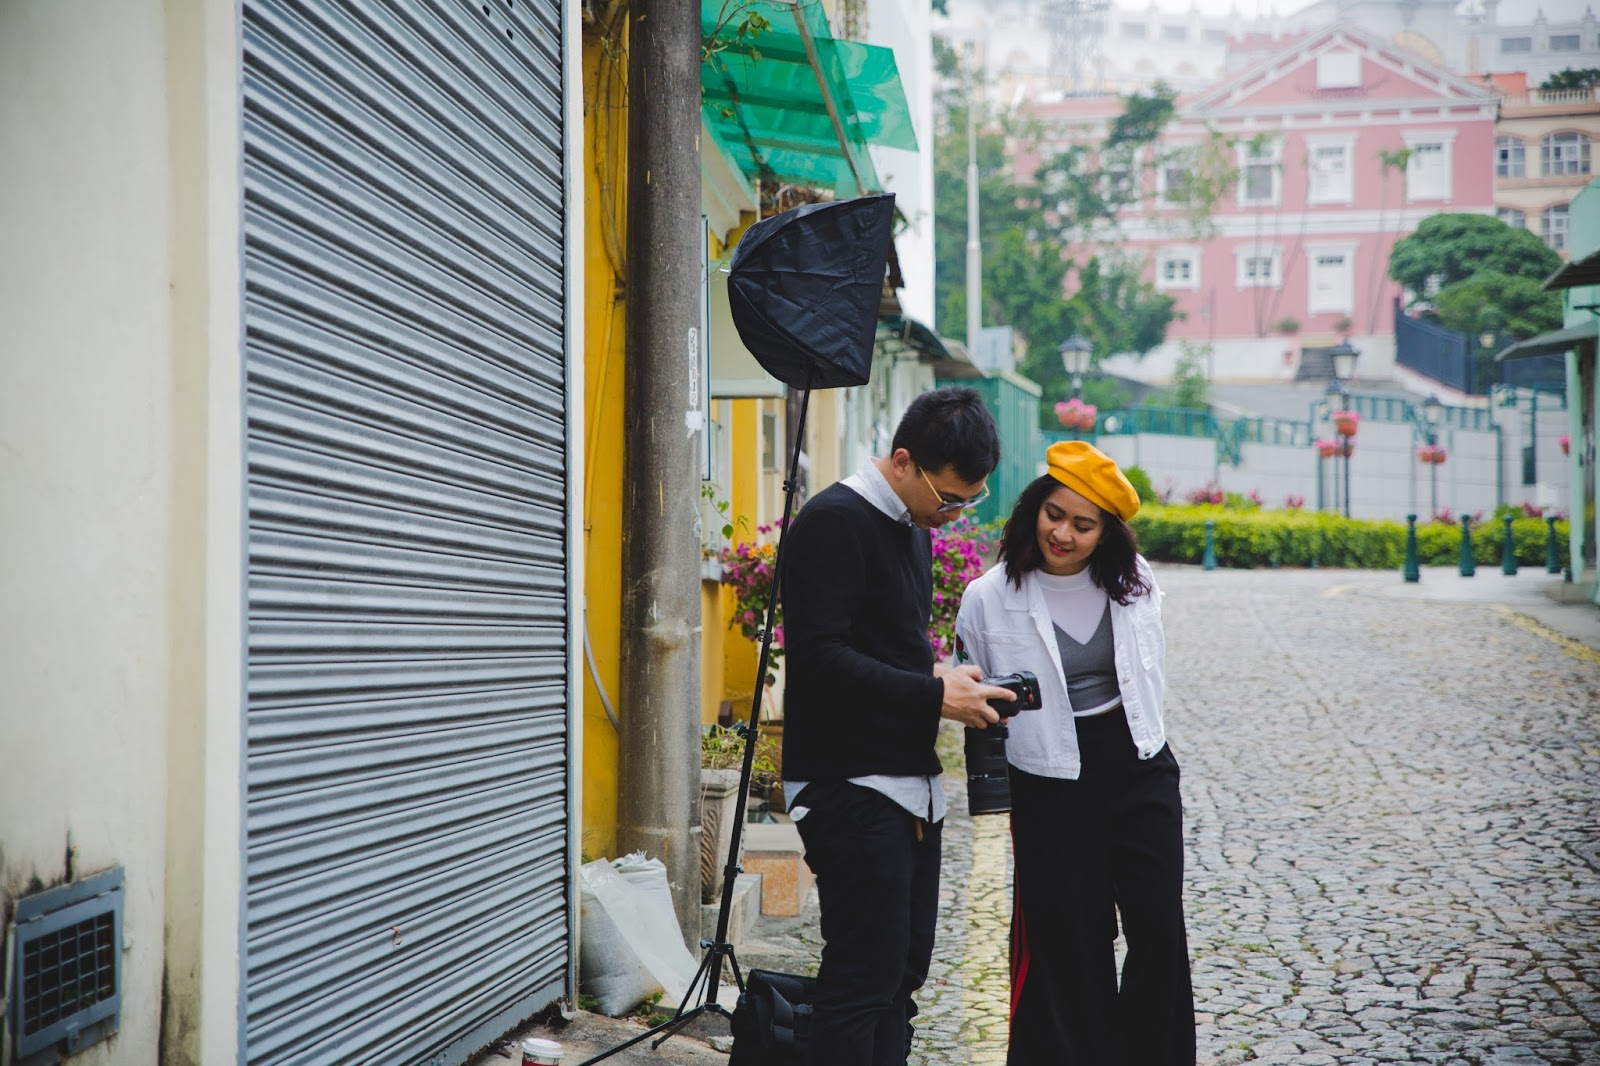 magazine photoshoot behind the scenes with macau fashion blogger carla florendo